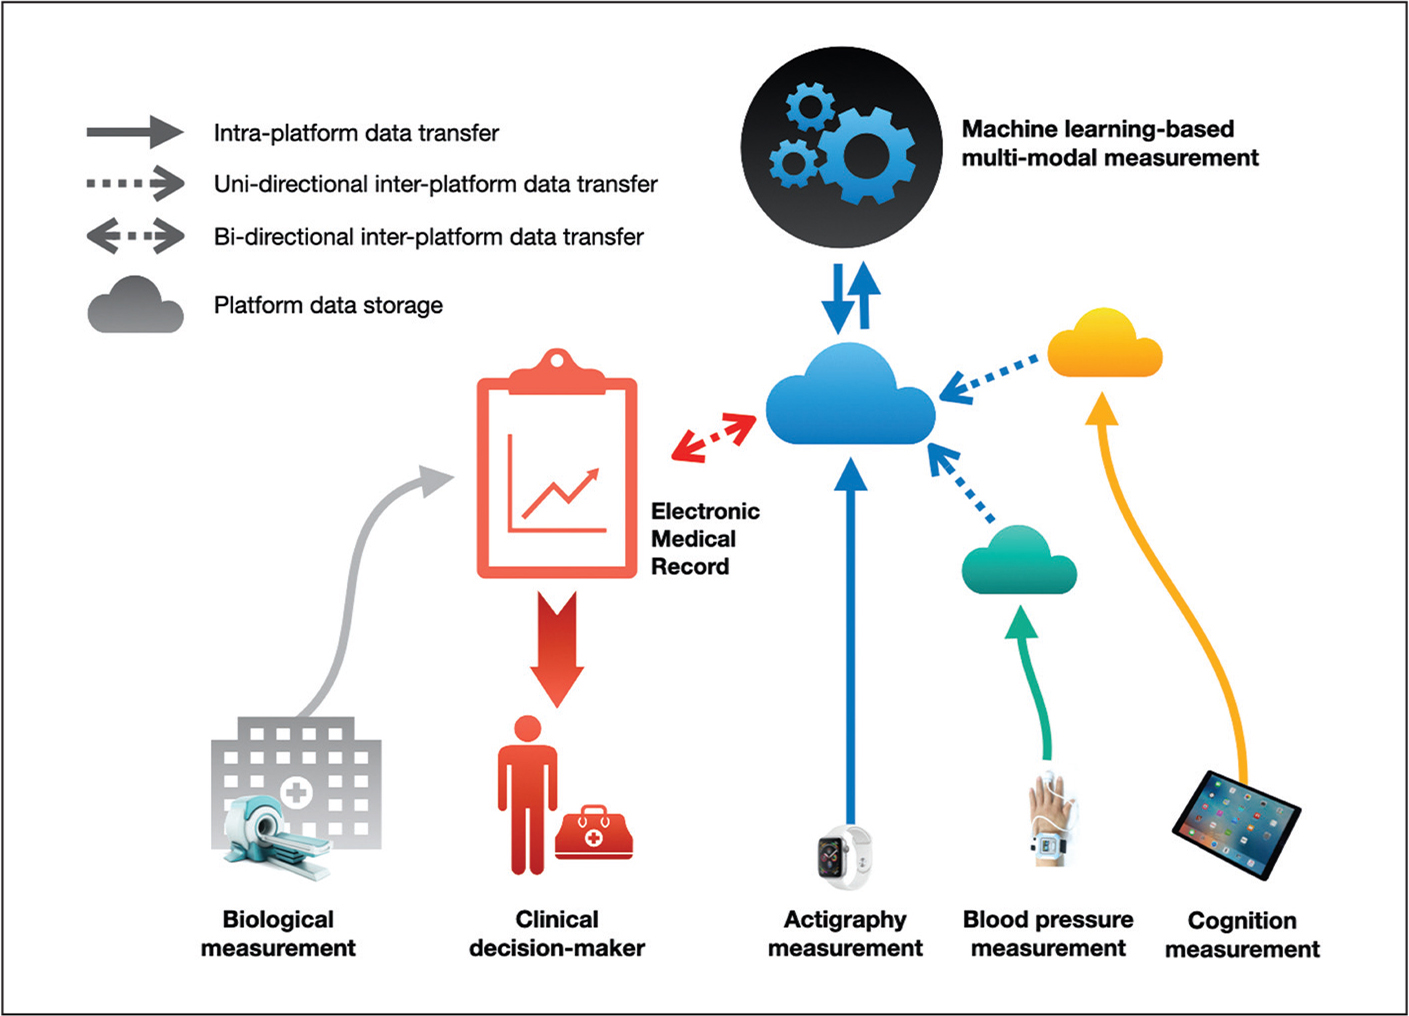 A technological infrastructure for the integration of digital measurement tools. Independent platforms for measurement of health (eg, actigraphy, blood pressure, cognition) will have their own data repositories, depicted as clouds. This data could be safely transferred across platforms using transfer tools such as secure APIs (application program interfaces), depicted using dashed arrows. Such tools could allow for both unidirectional and bidirectional movement of data. If a combination of measures can be accessible from a single data repository, it allows for the application of machine learning-based measurement of health, integrating all the independent measures in its prediction. The results from this calculation can be integrated into the patient's electronic health record, which can be used for clinical decision-making.